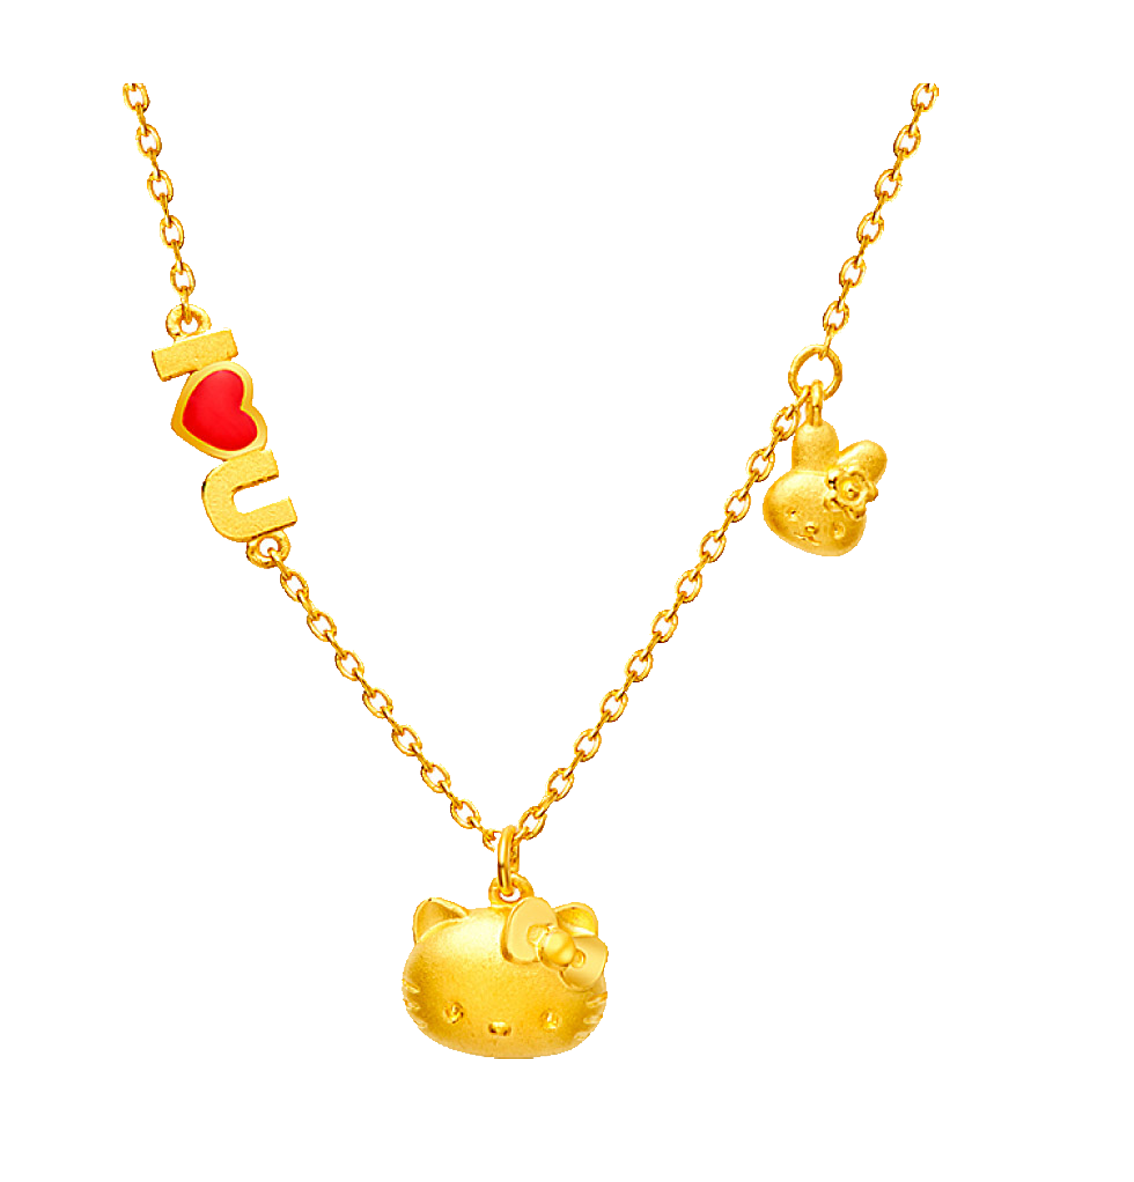 Hello kitty necklace png. Chow tai fook gold